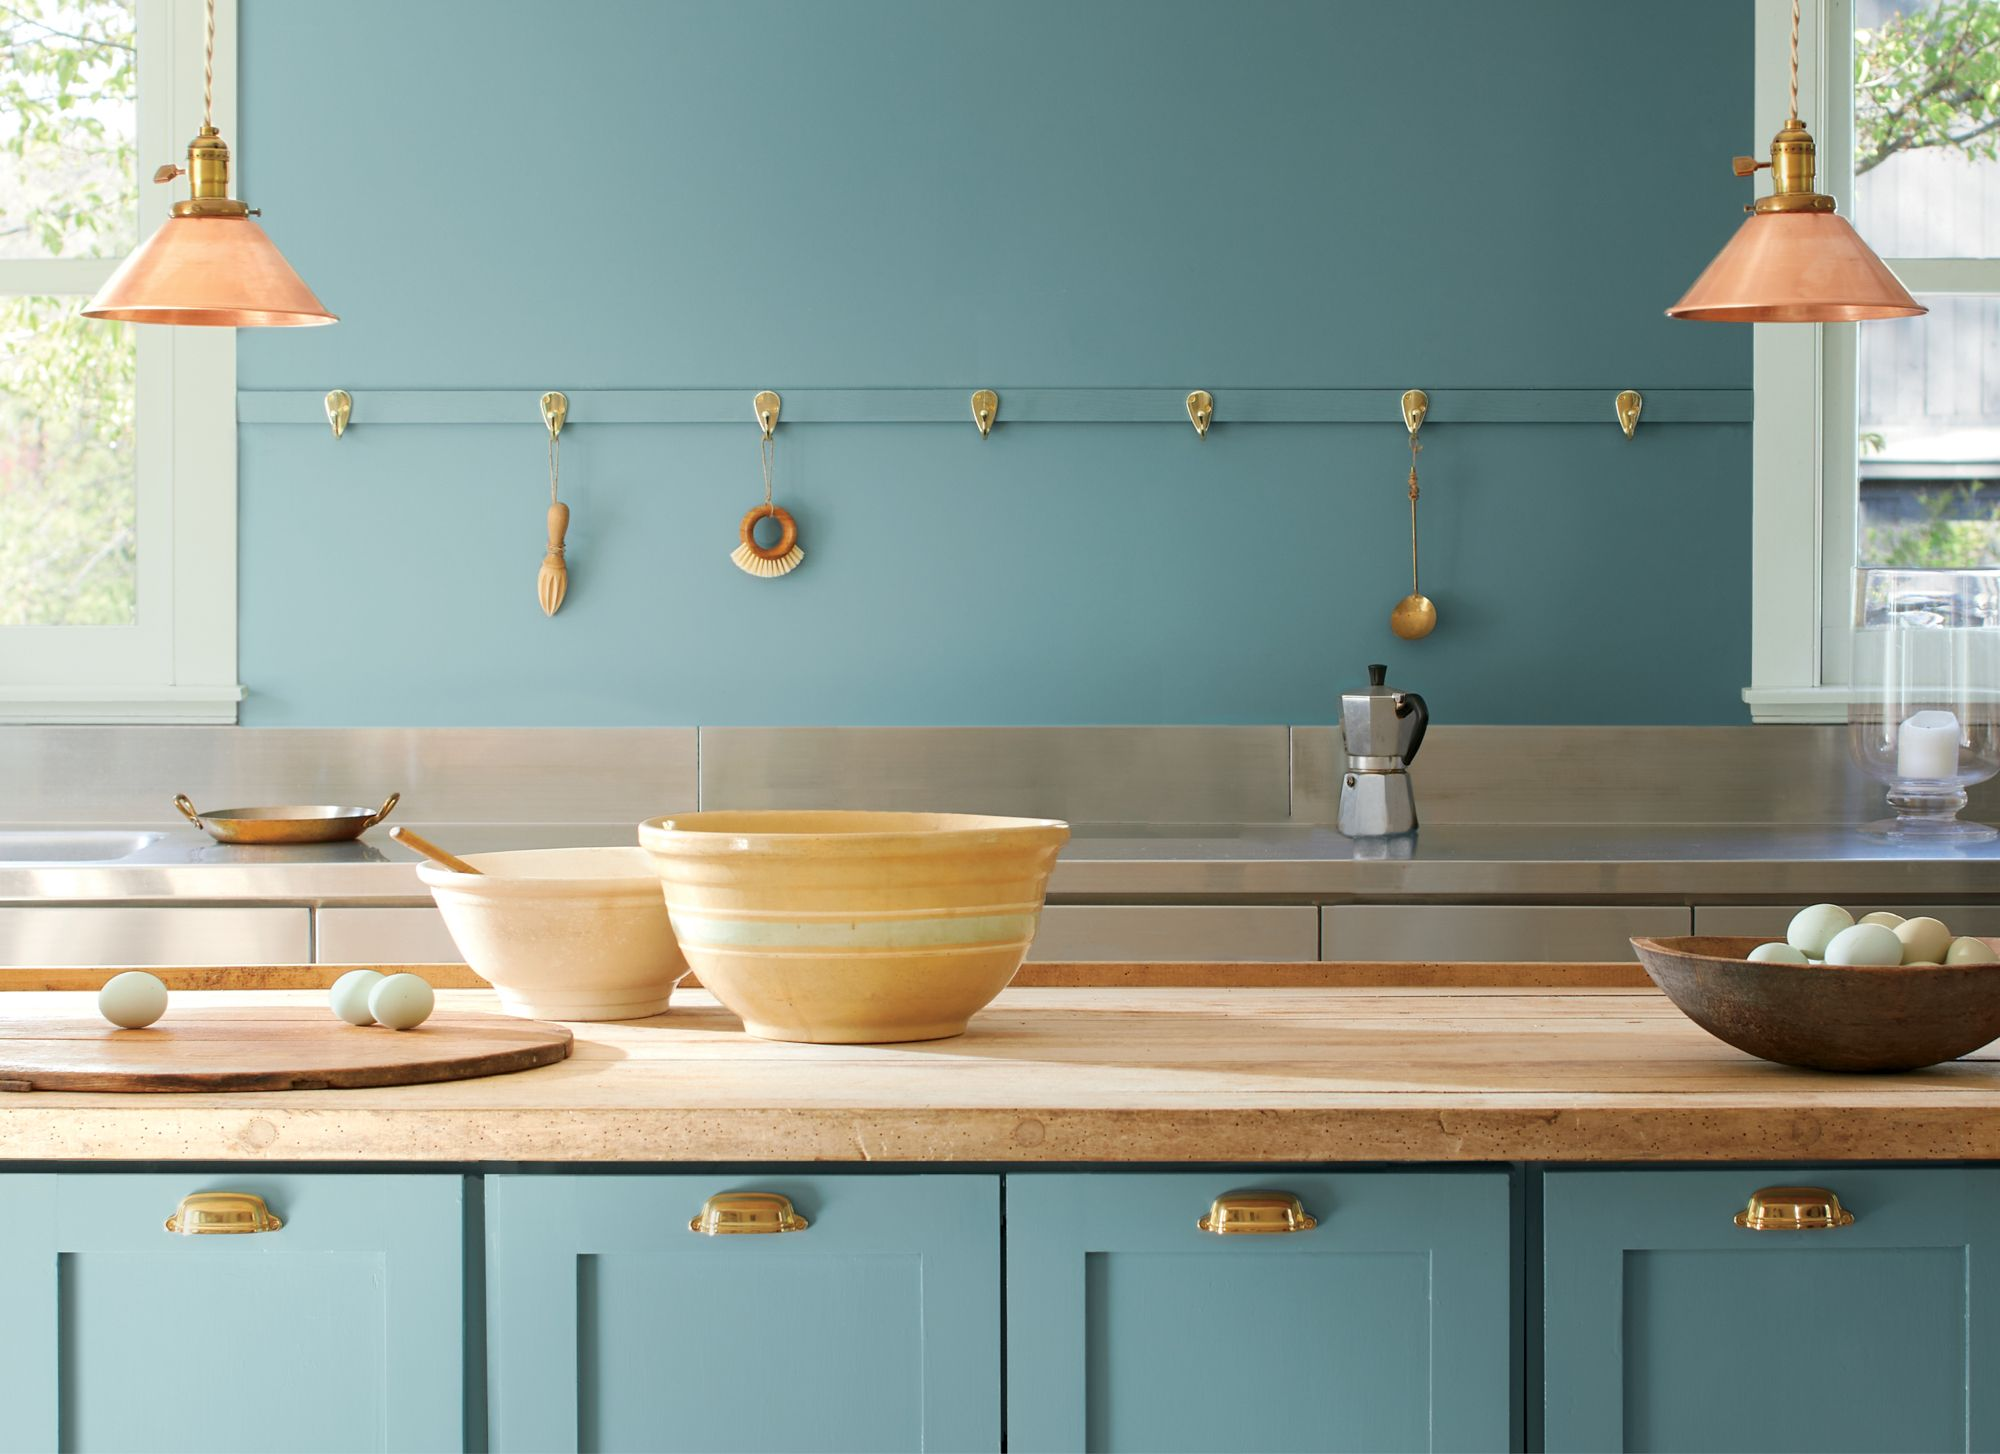 Benjamin Moore Reveals Color Of The Year 2021 Aegean Teal Color Trend